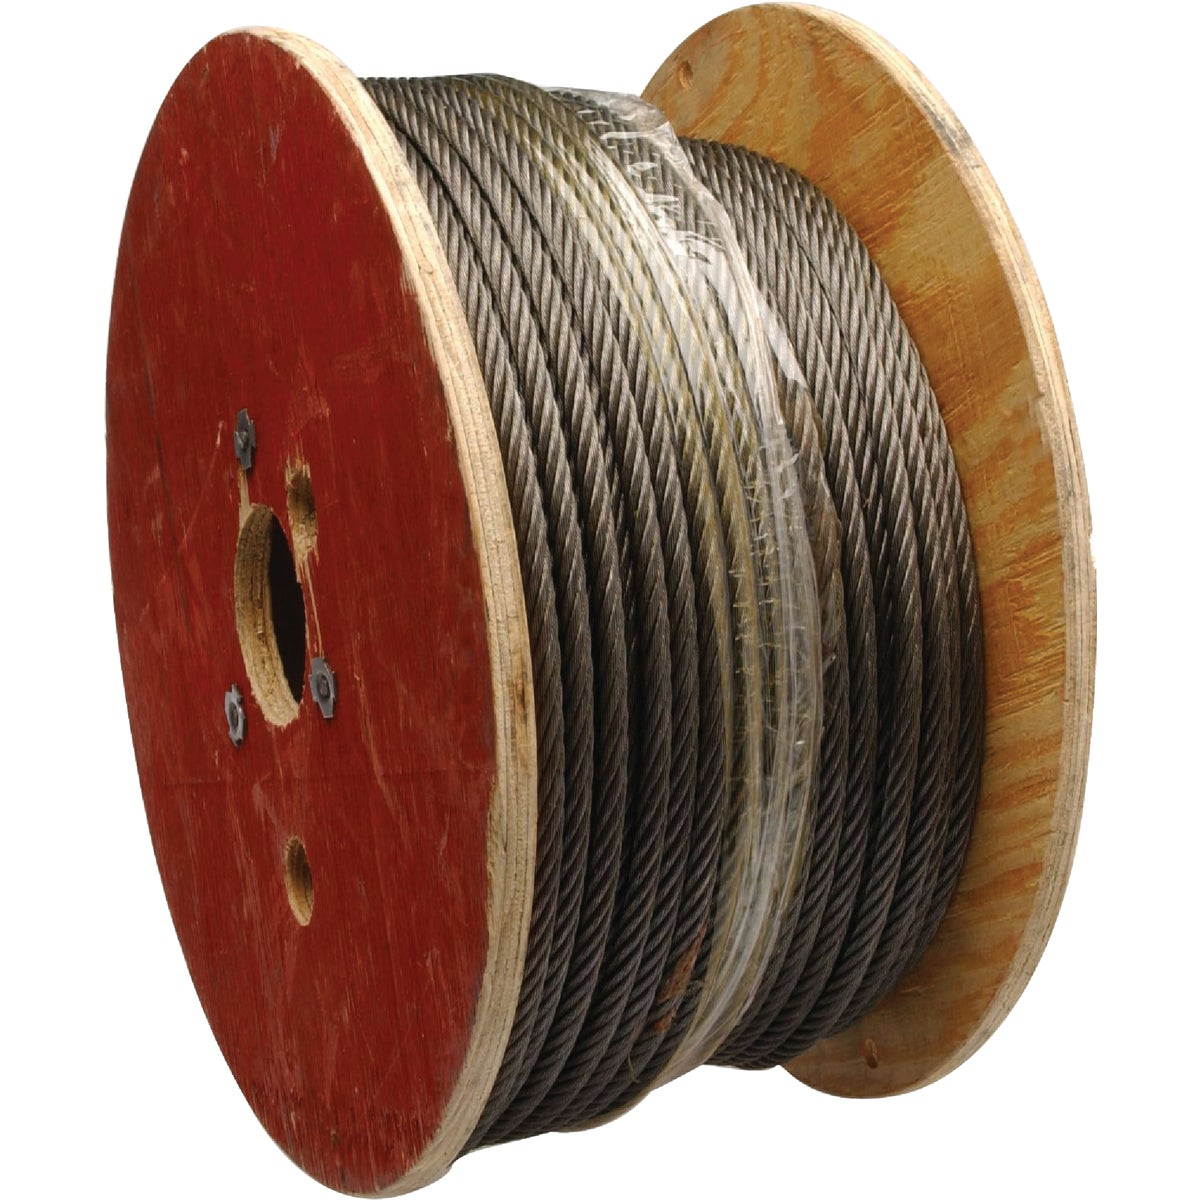 "500' 1/4"" 6X19 WIRE ROPE - 7008027 by Cooper Campbell Apex"